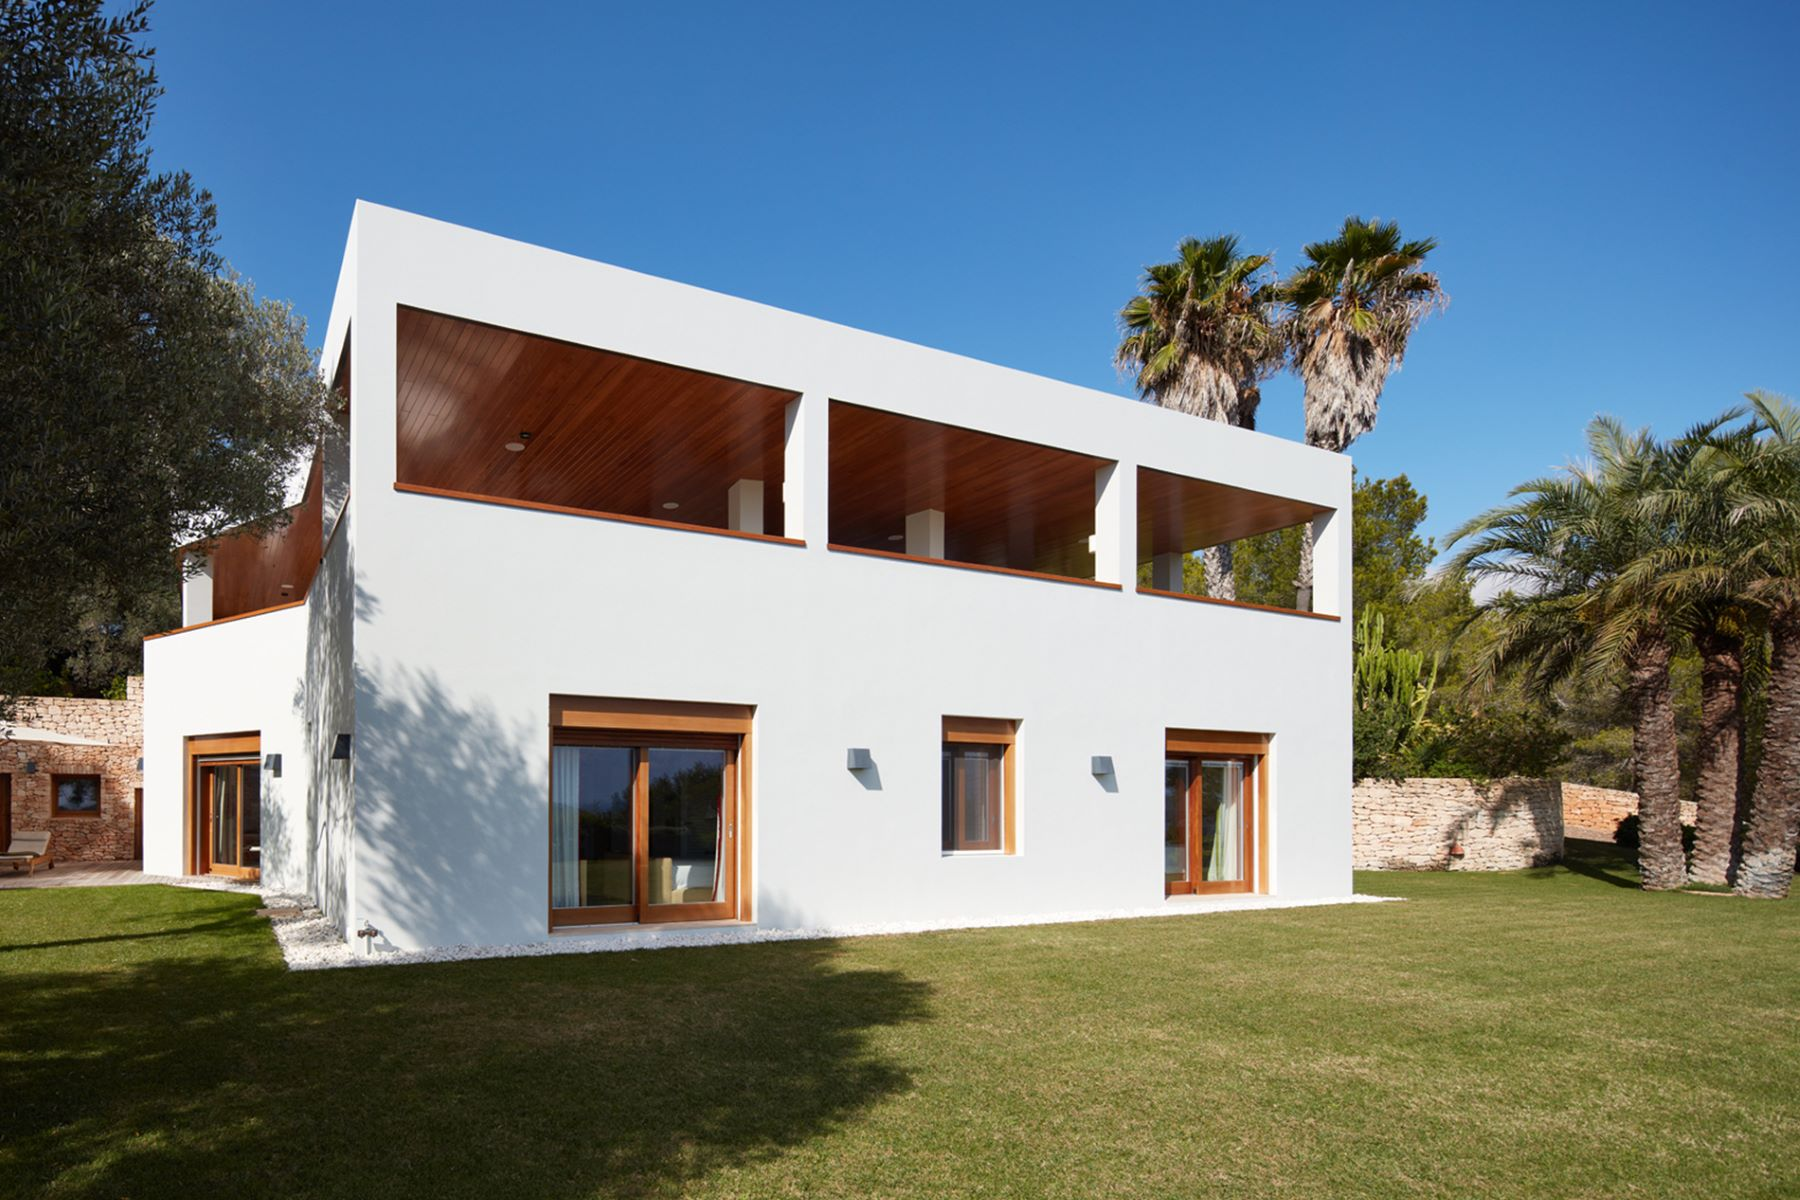 Single Family Home for Sale at Stunning Sea View Villa in Idyllic Setting in Ibiza Other Balearic Islands, Balearic Islands, 07819 Spain